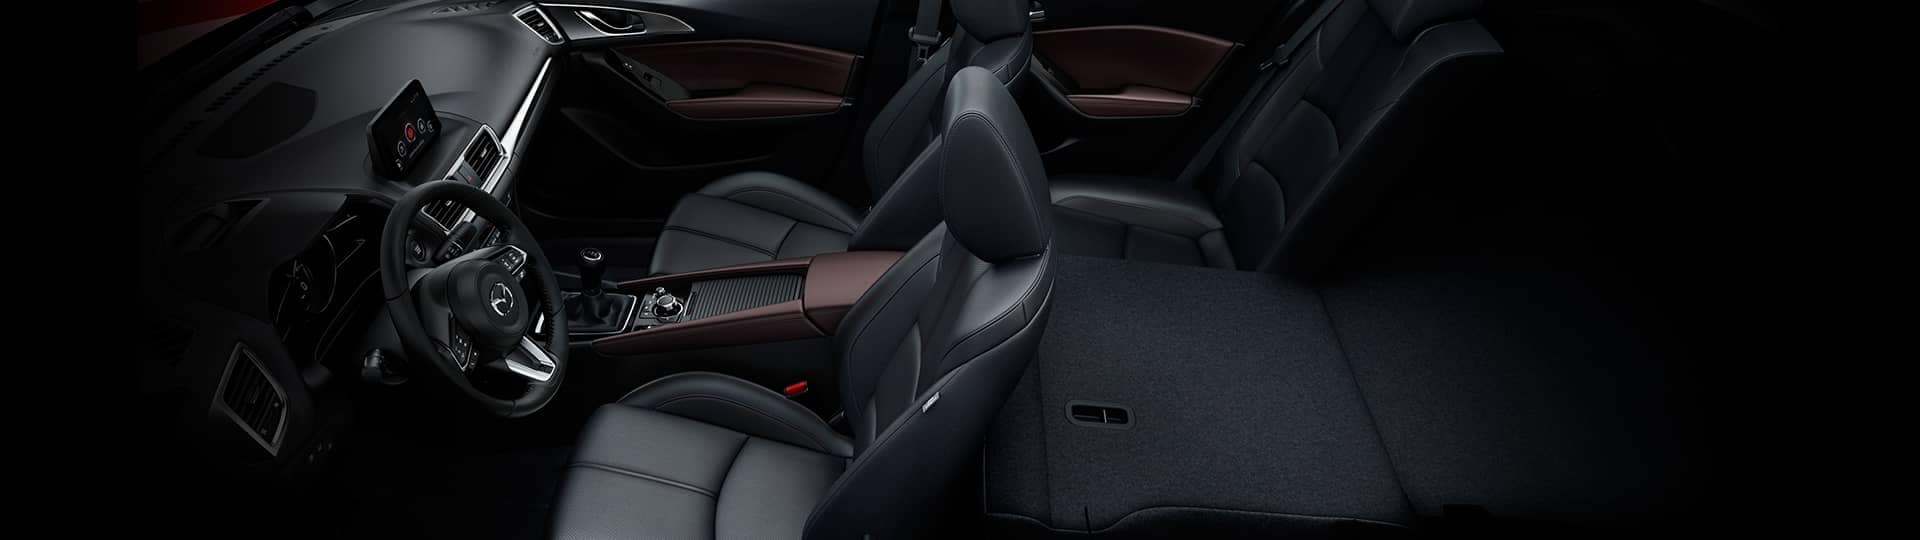 2018-Mazda3-Canada-top-down-interior-view